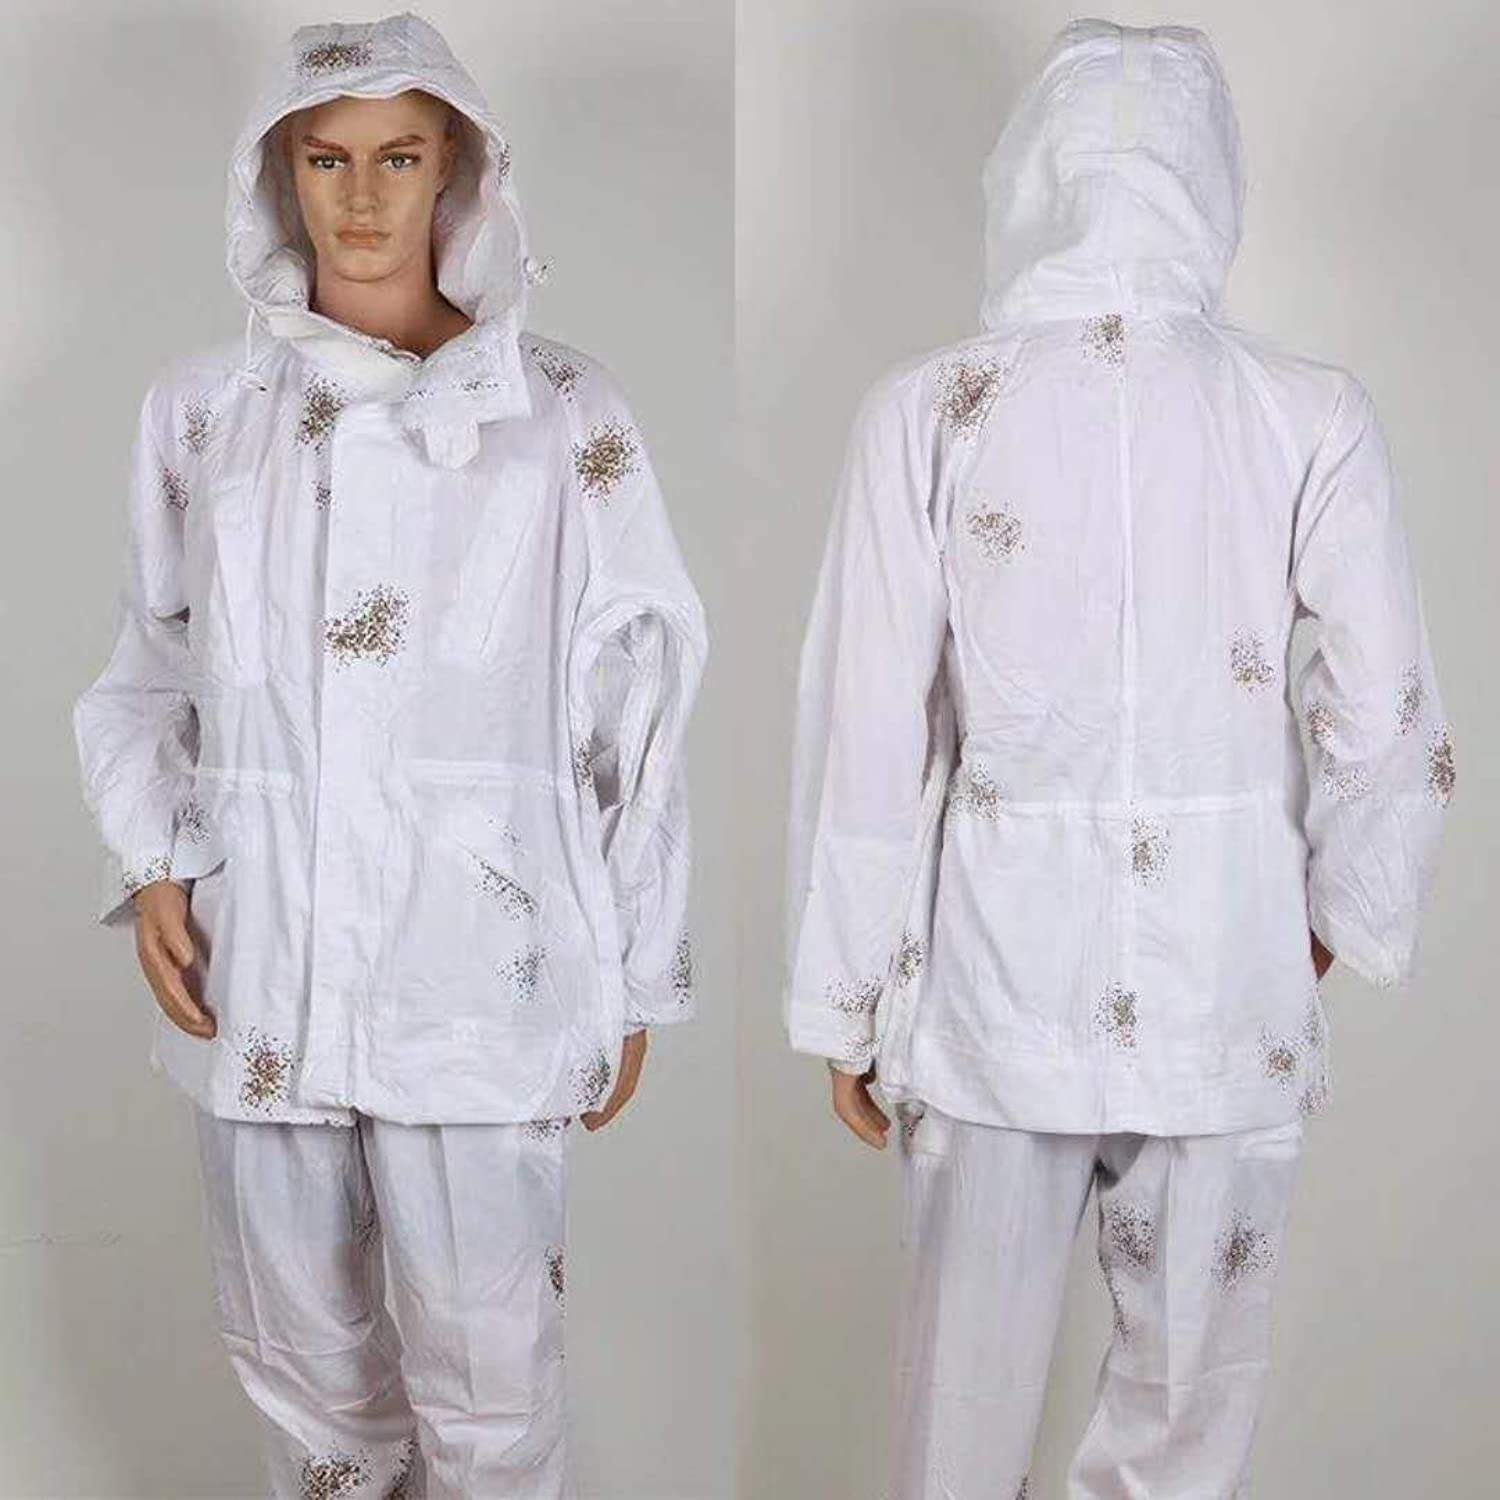 Snow White color Camouflage Suit for Hunting, Blinding